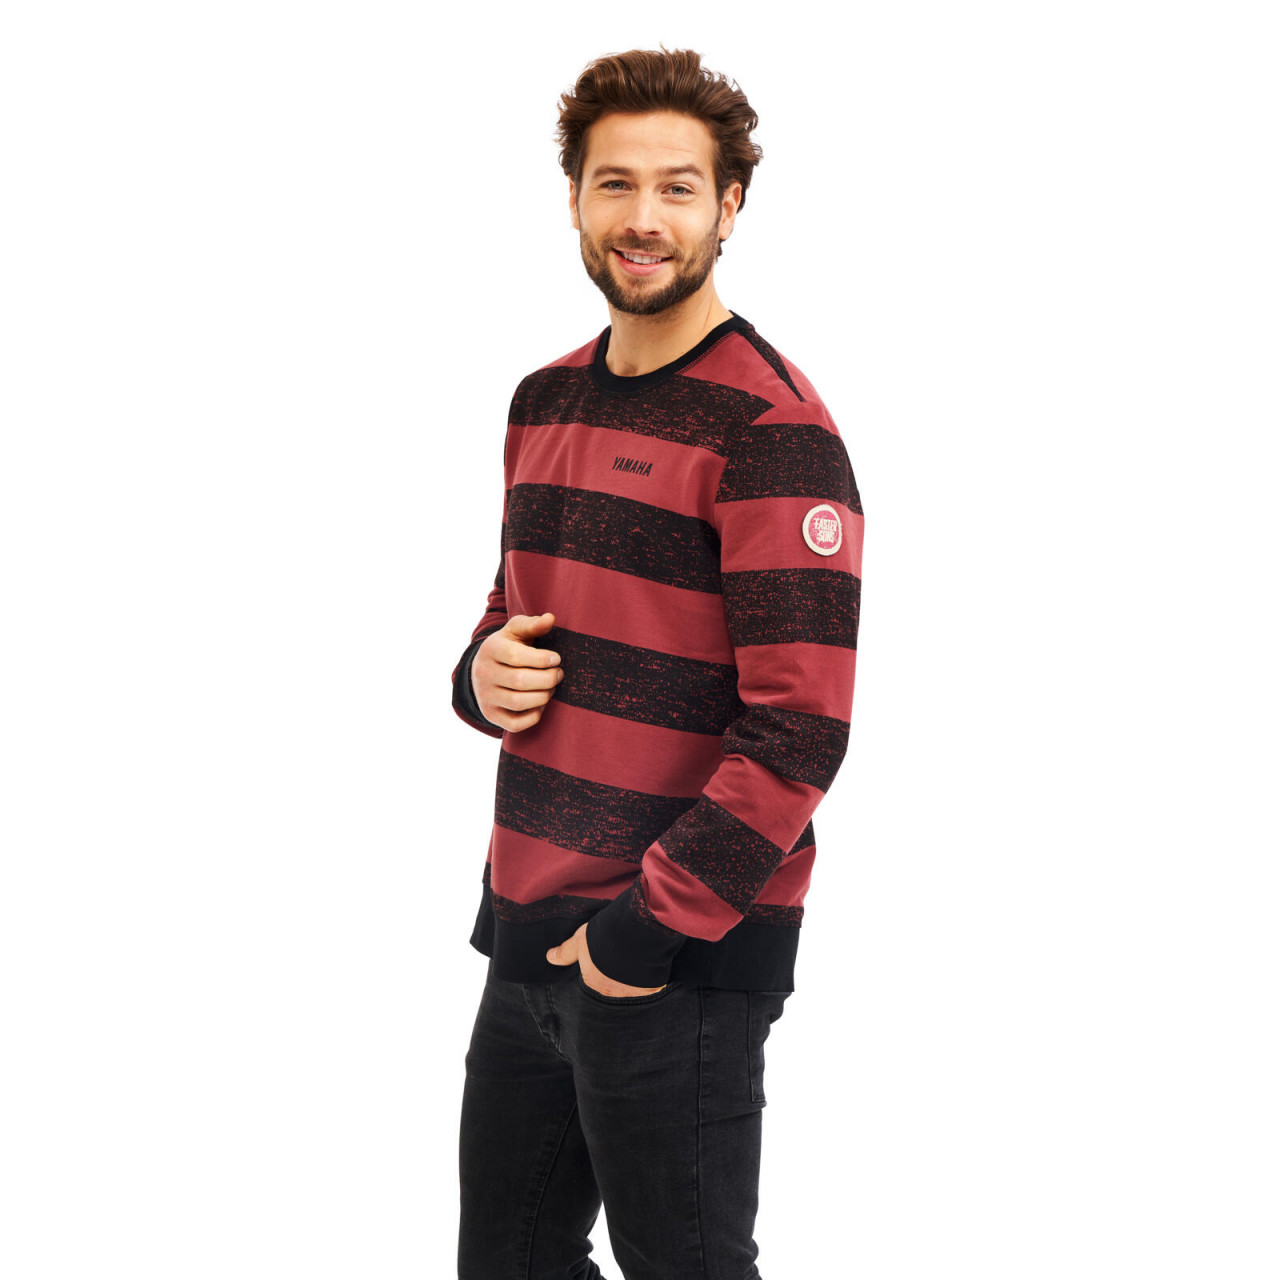 YAMAHA Sweat homme Angus Faster Sons 2021